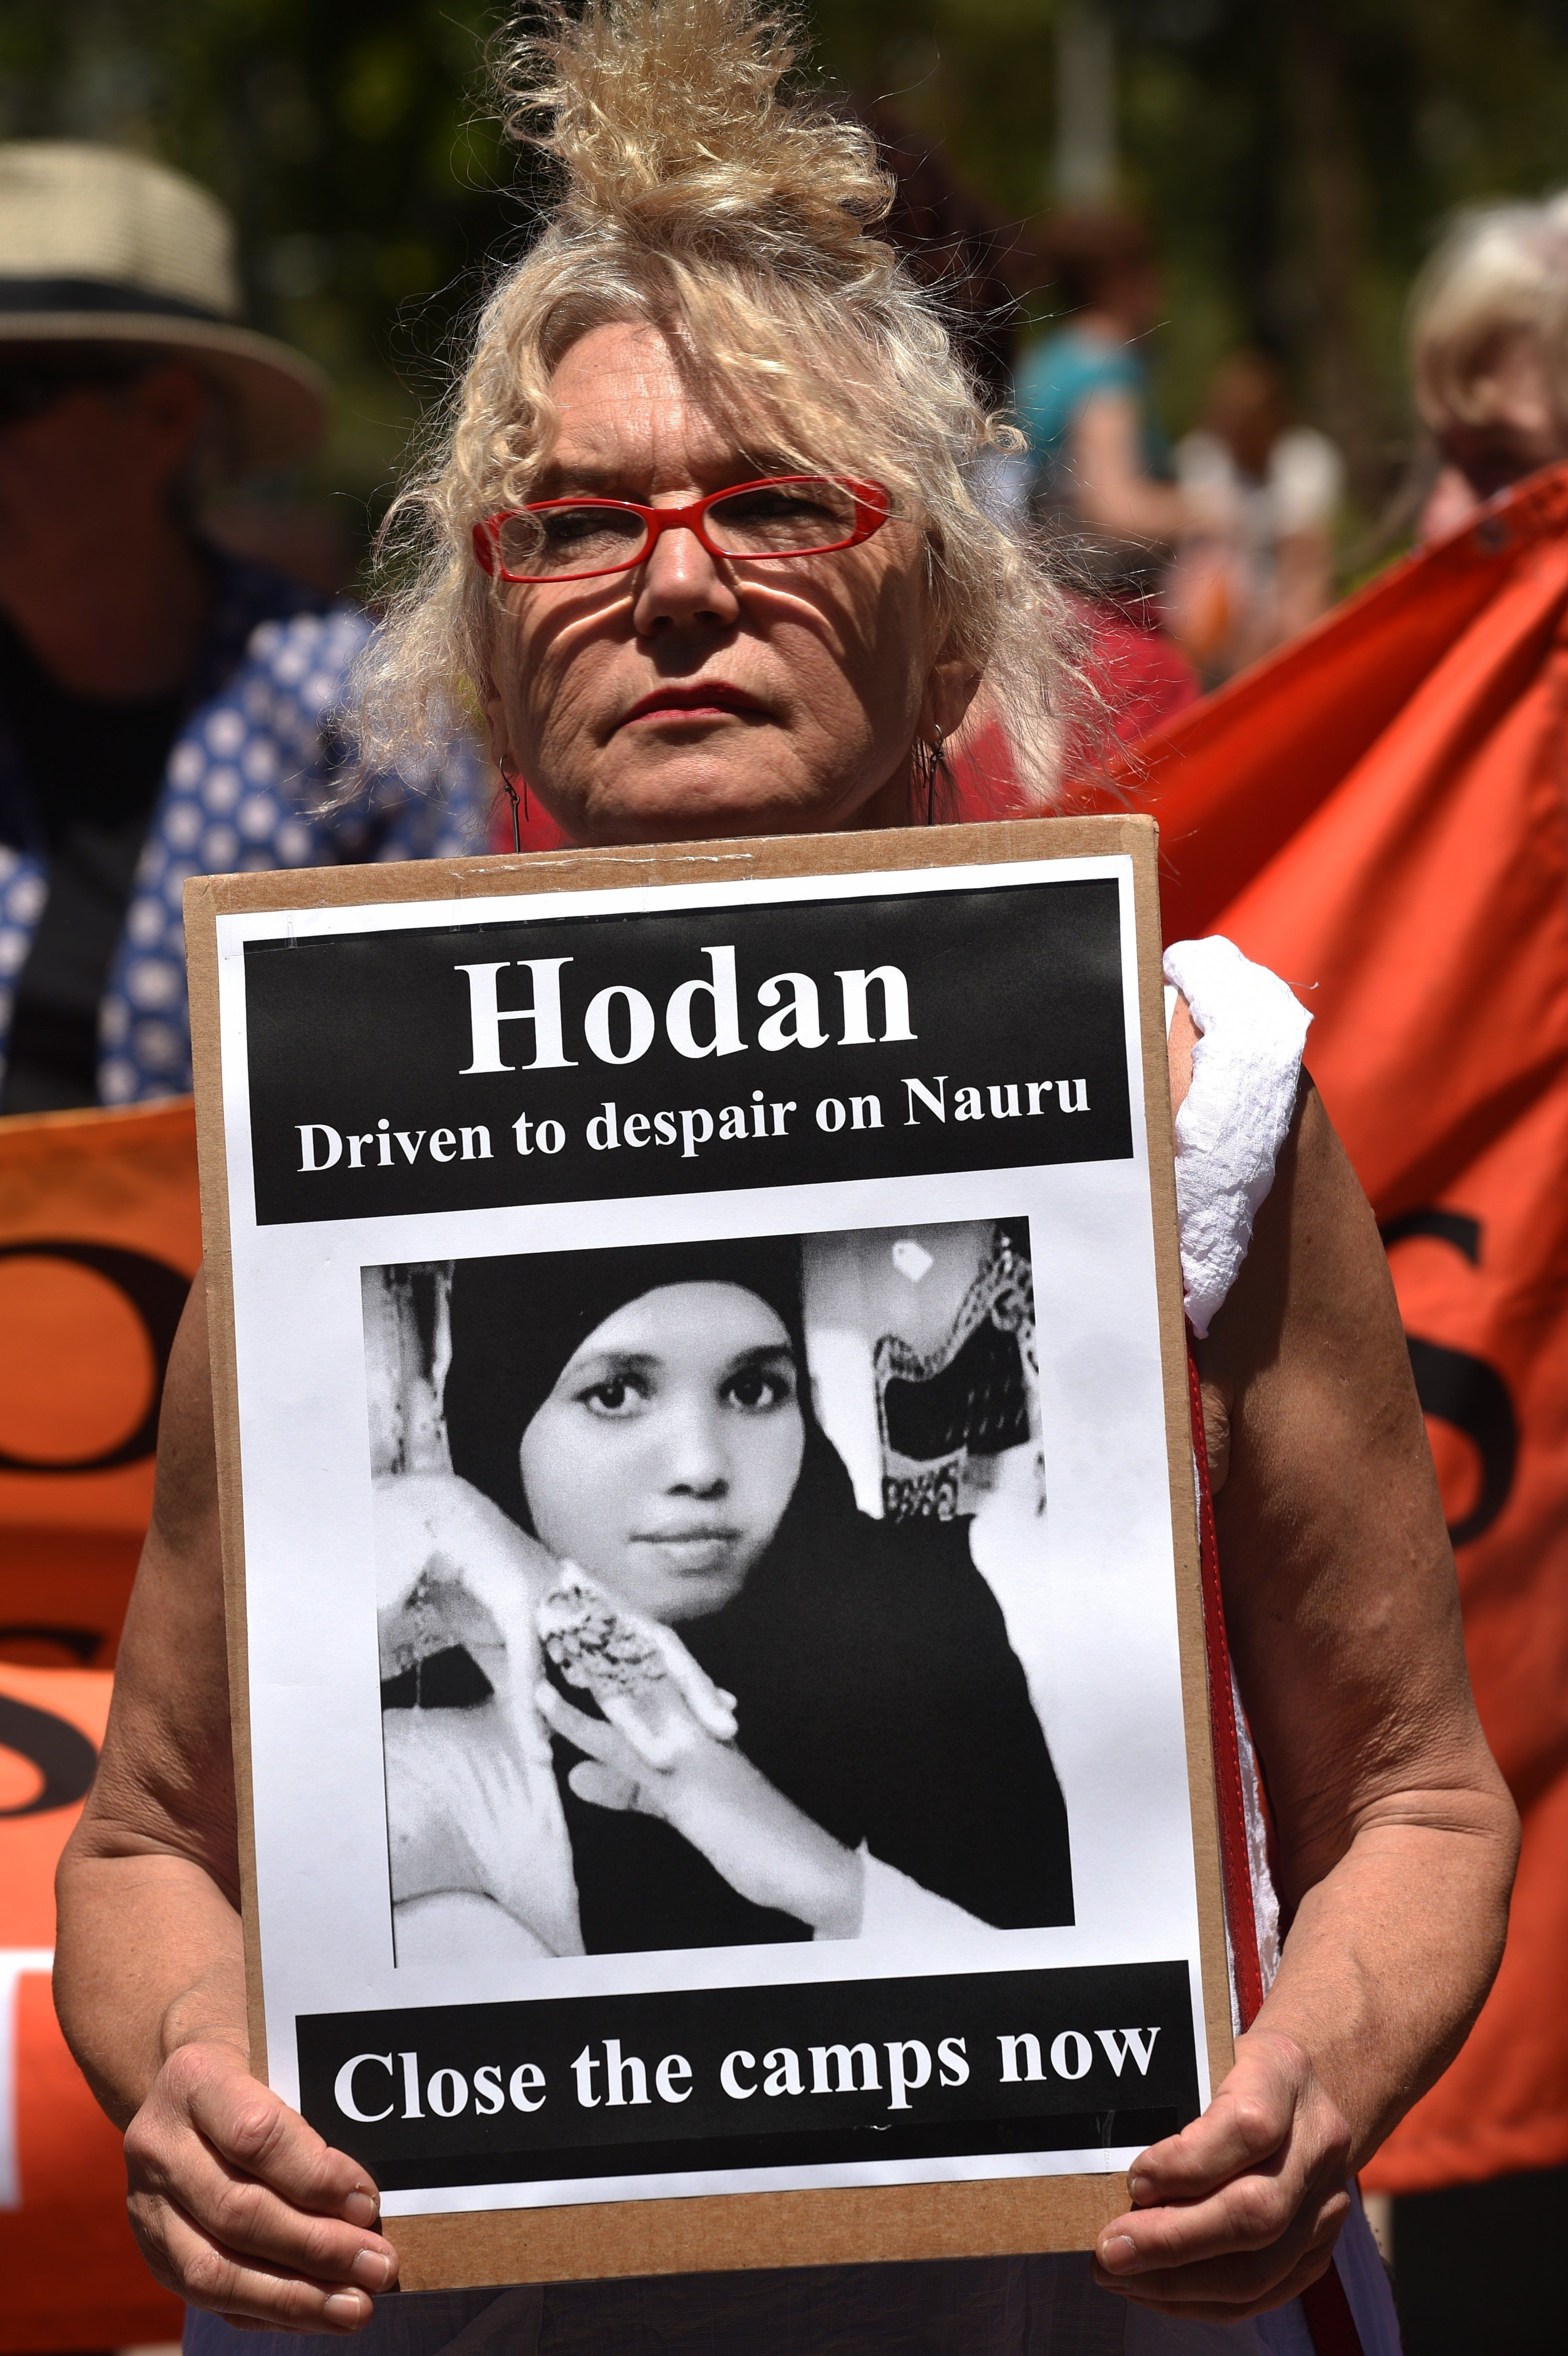 An activist holds a placard in an event organised by Doctors for Refugees to demand humane treatment of asylum seekers and refugees, in Sydney on November 5, 2016.  Australia's detention of asylum-seekers on the remote Pacific islands of  Nauru and Papua New Guinea's Manus, 'amounts to torture' under international law, Amnesty International said recently in a report that alleged widespread abuse and an 'epidemic of self-harm'. / AFP / PETER PARKS        (Photo credit should read PETER PARKS/AFP/Getty Images)